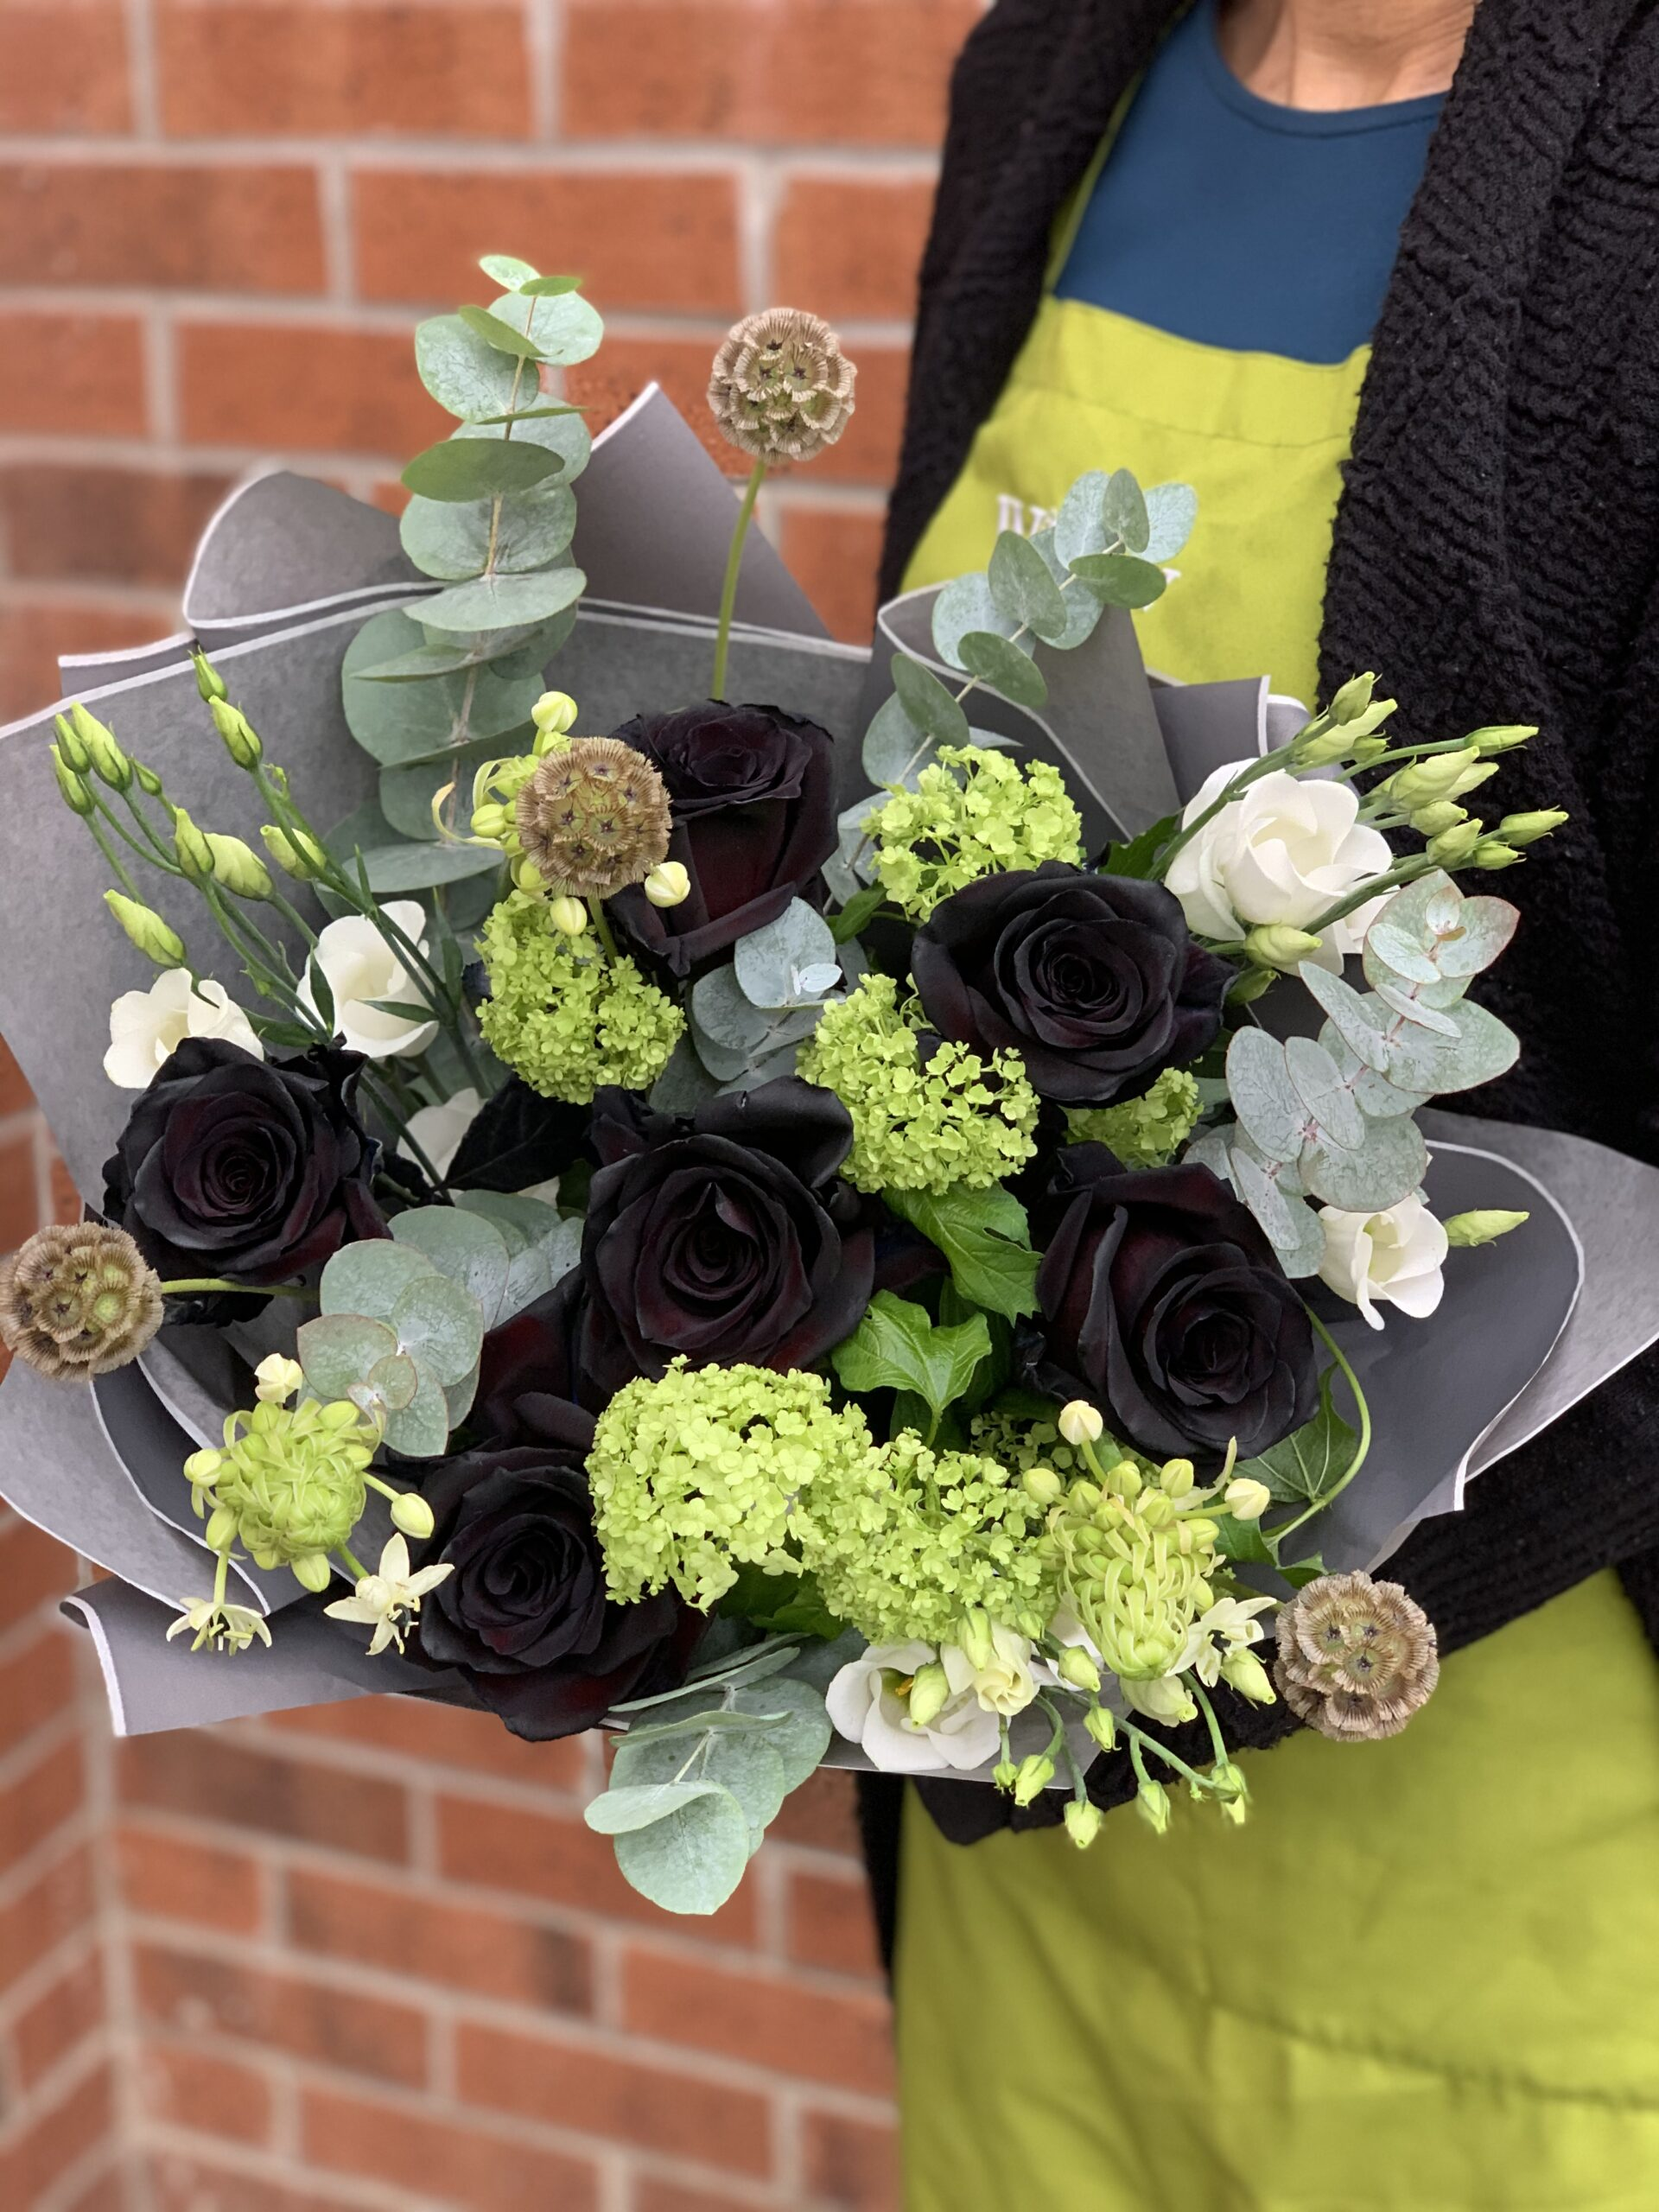 In this image, someone wearing a green apron is holding a bouquet of black flowers.